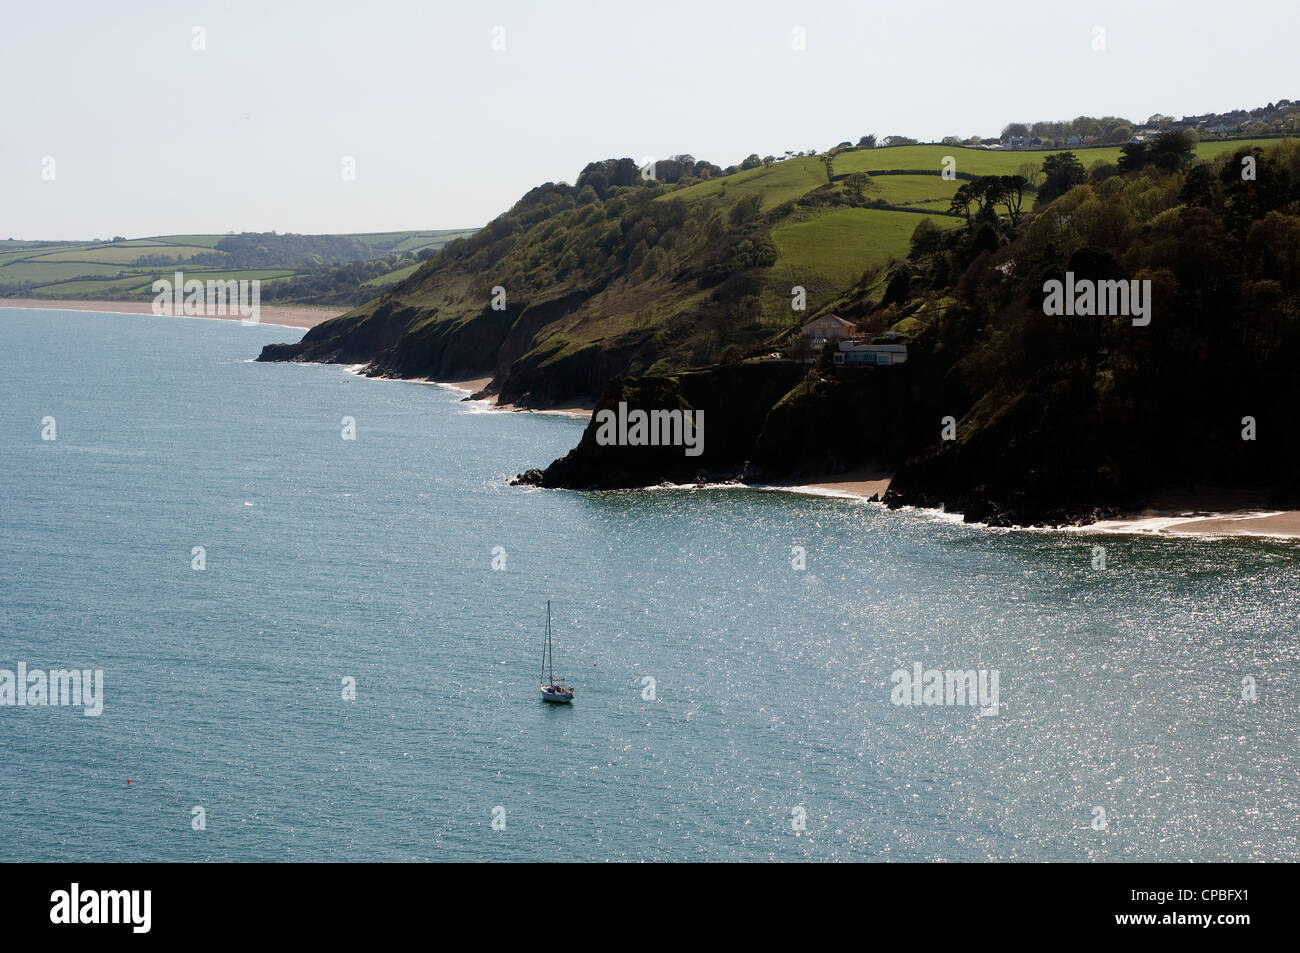 blackpool sands,Devon,Blackpool sands,South Hams,Devon,sands, Bay,South Hams,Devon, bay, boat, britain, british, - Stock Image